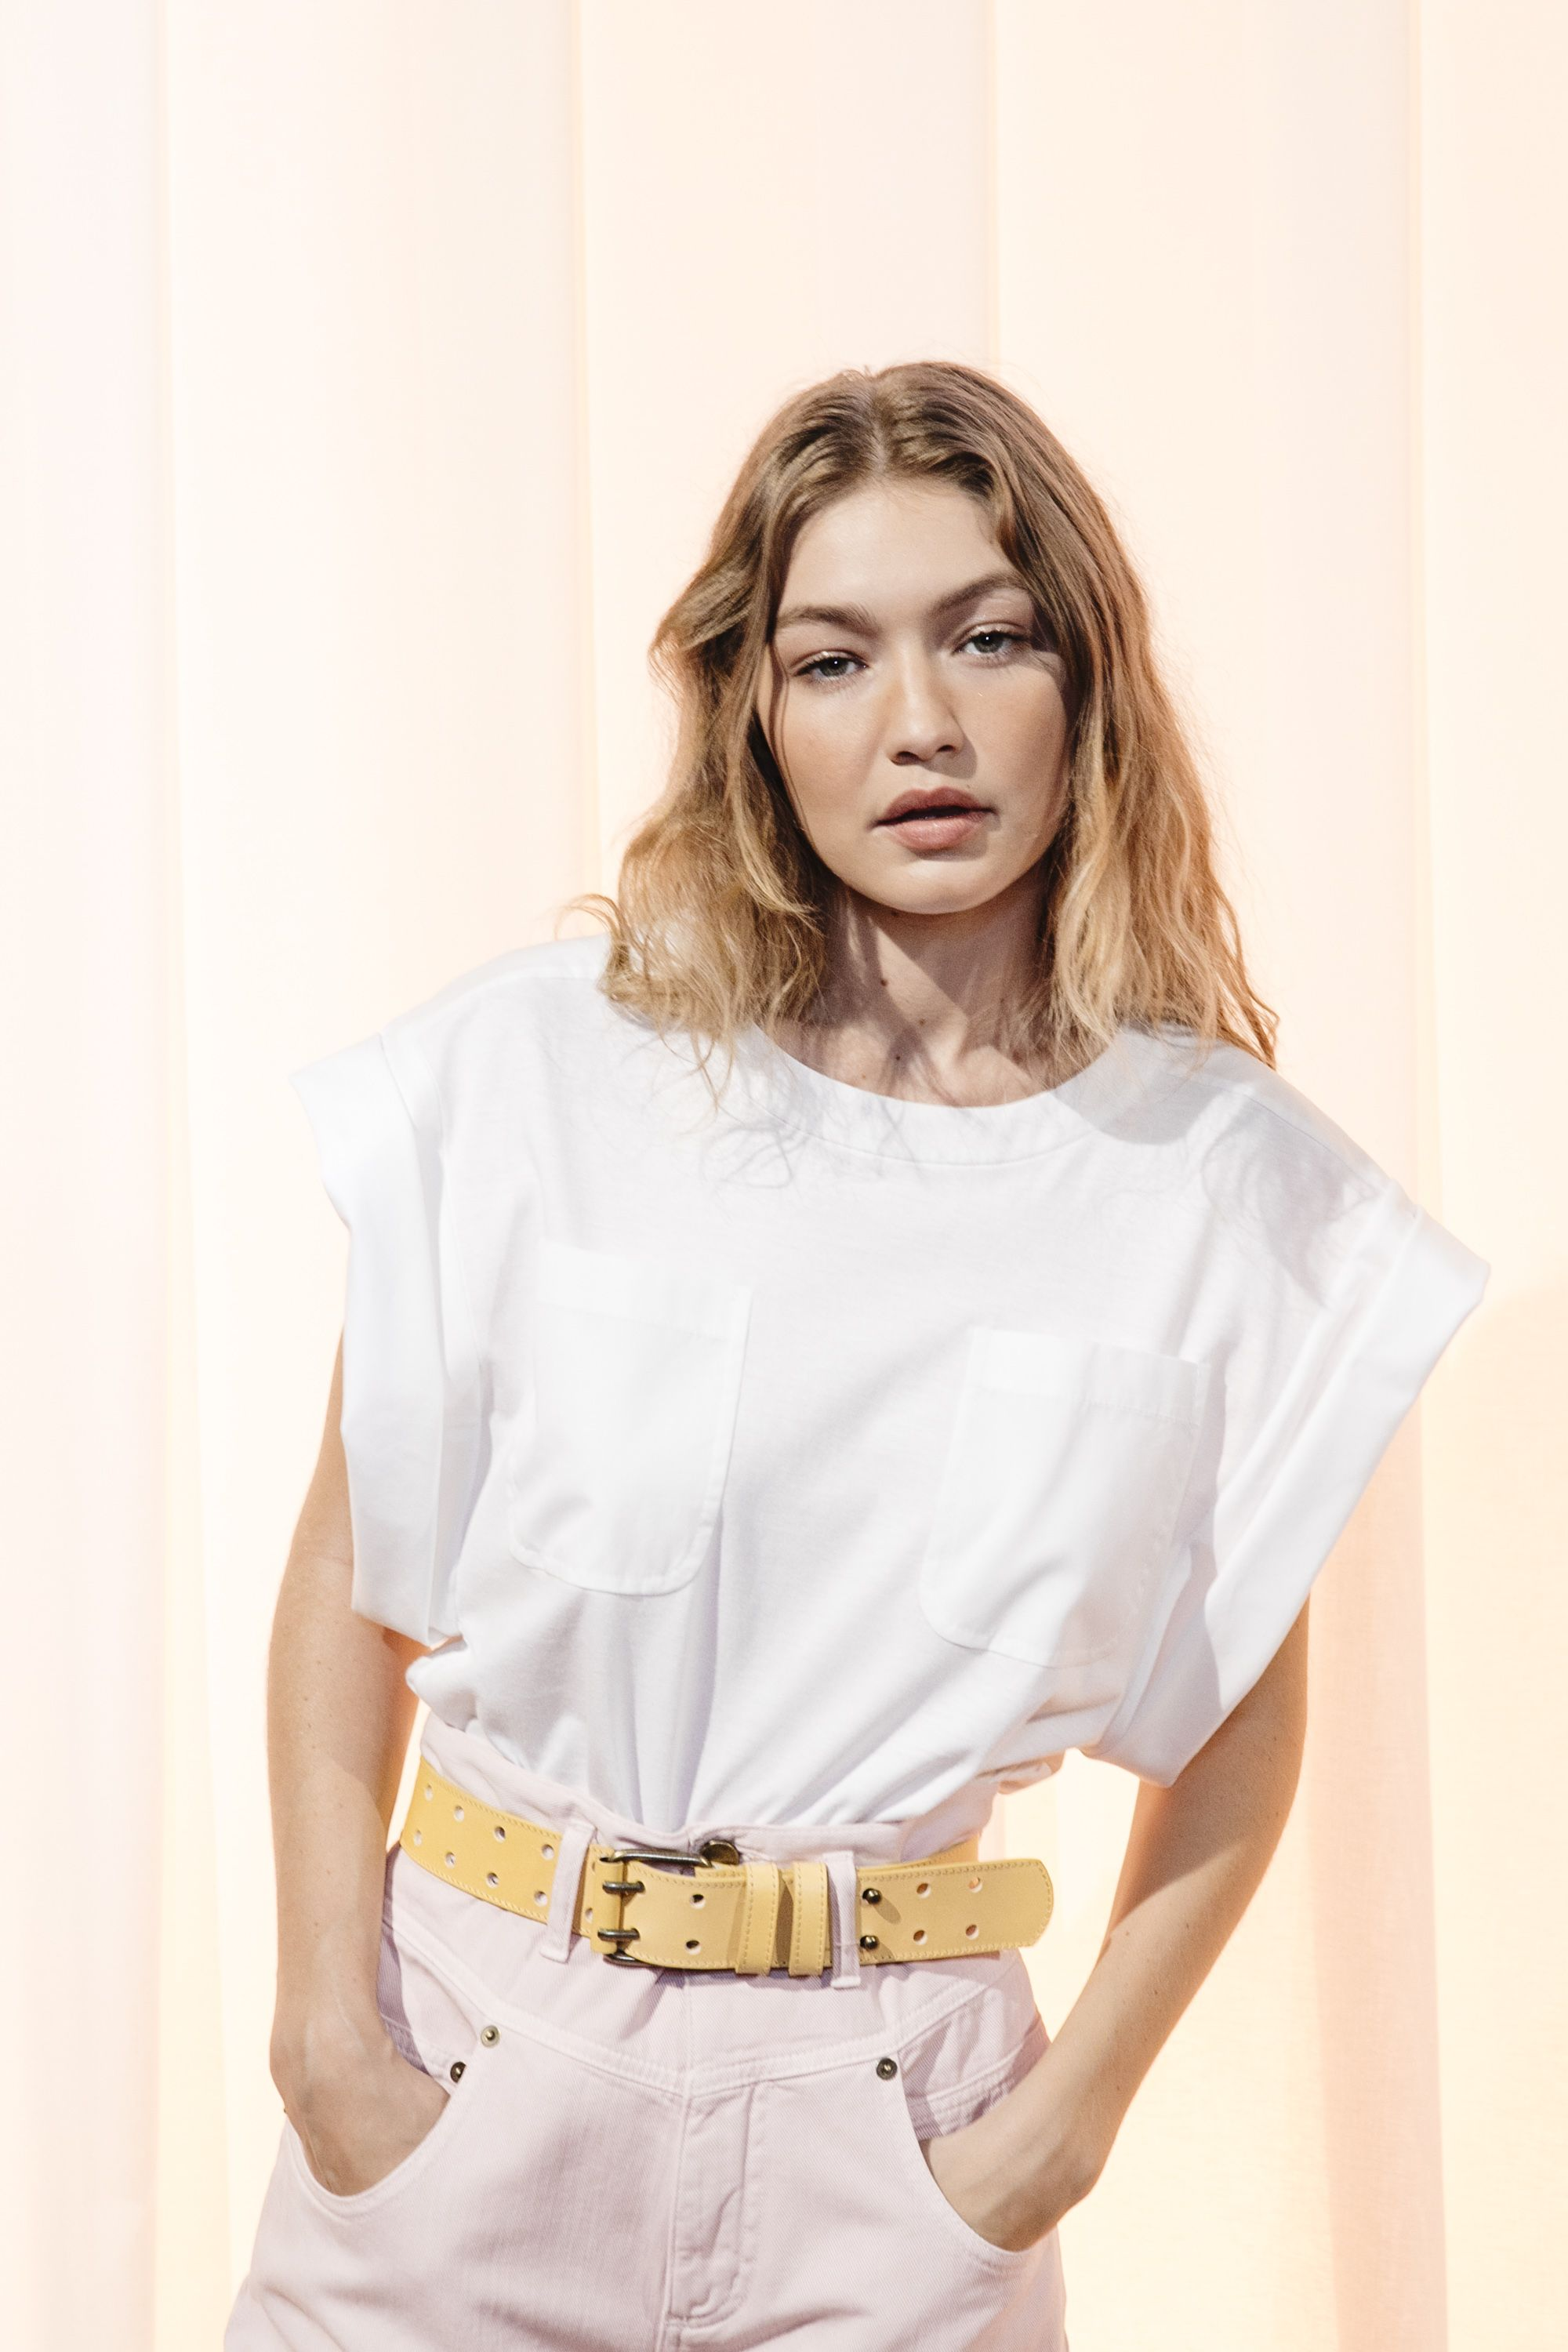 Gigi Hadid Has Been Called Up As A Potential Juror For Harvey Weinstein's Trial, But What Does This Actually Mean?